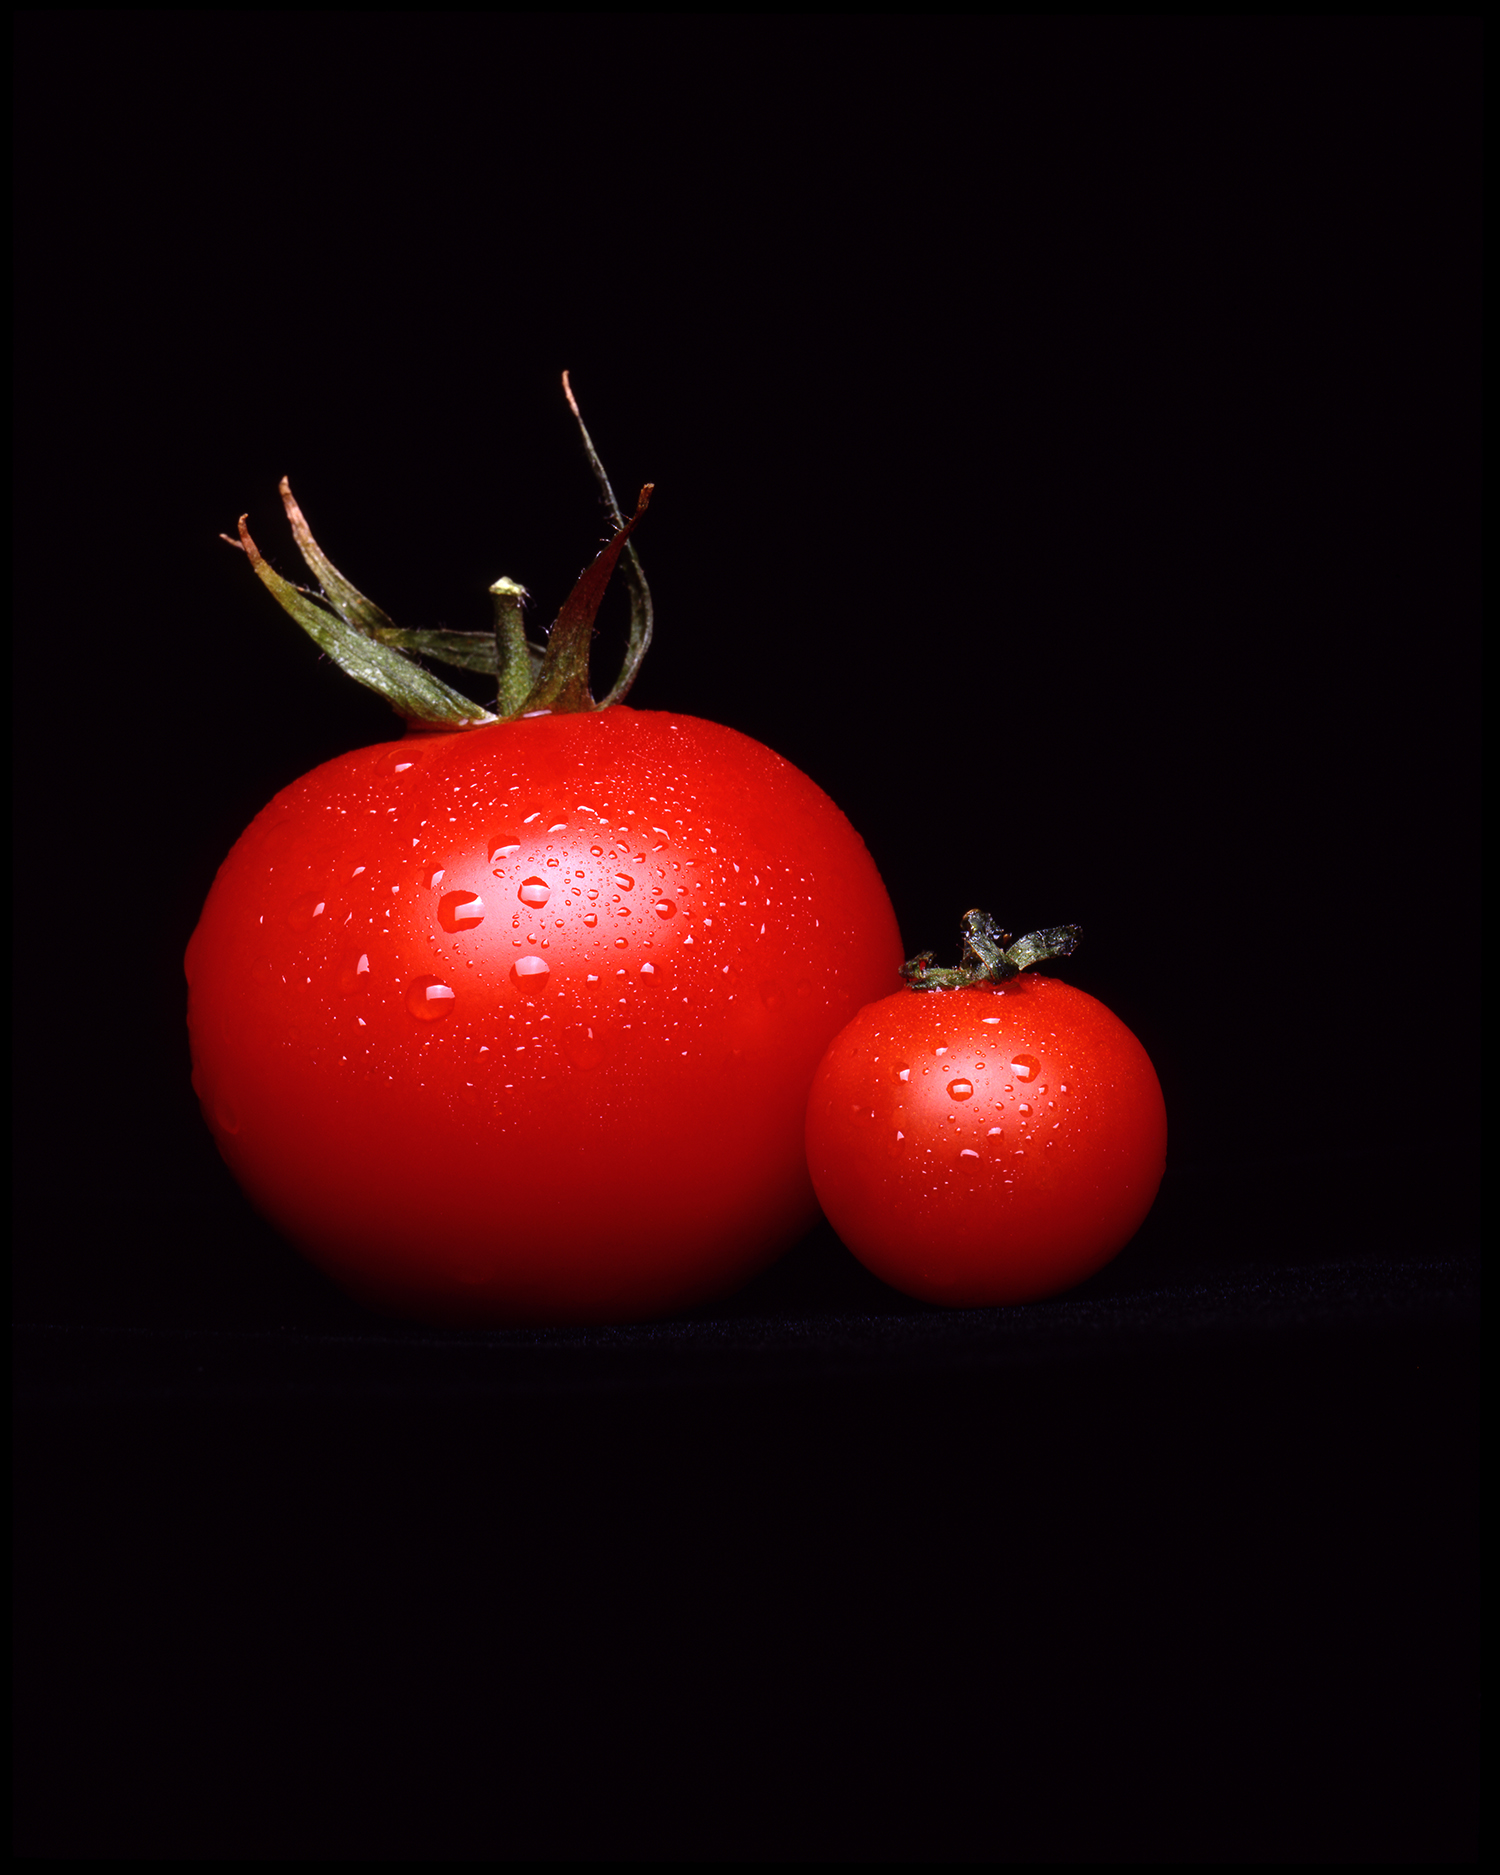 Todd Rothstein Photography Tomatoes.jpg